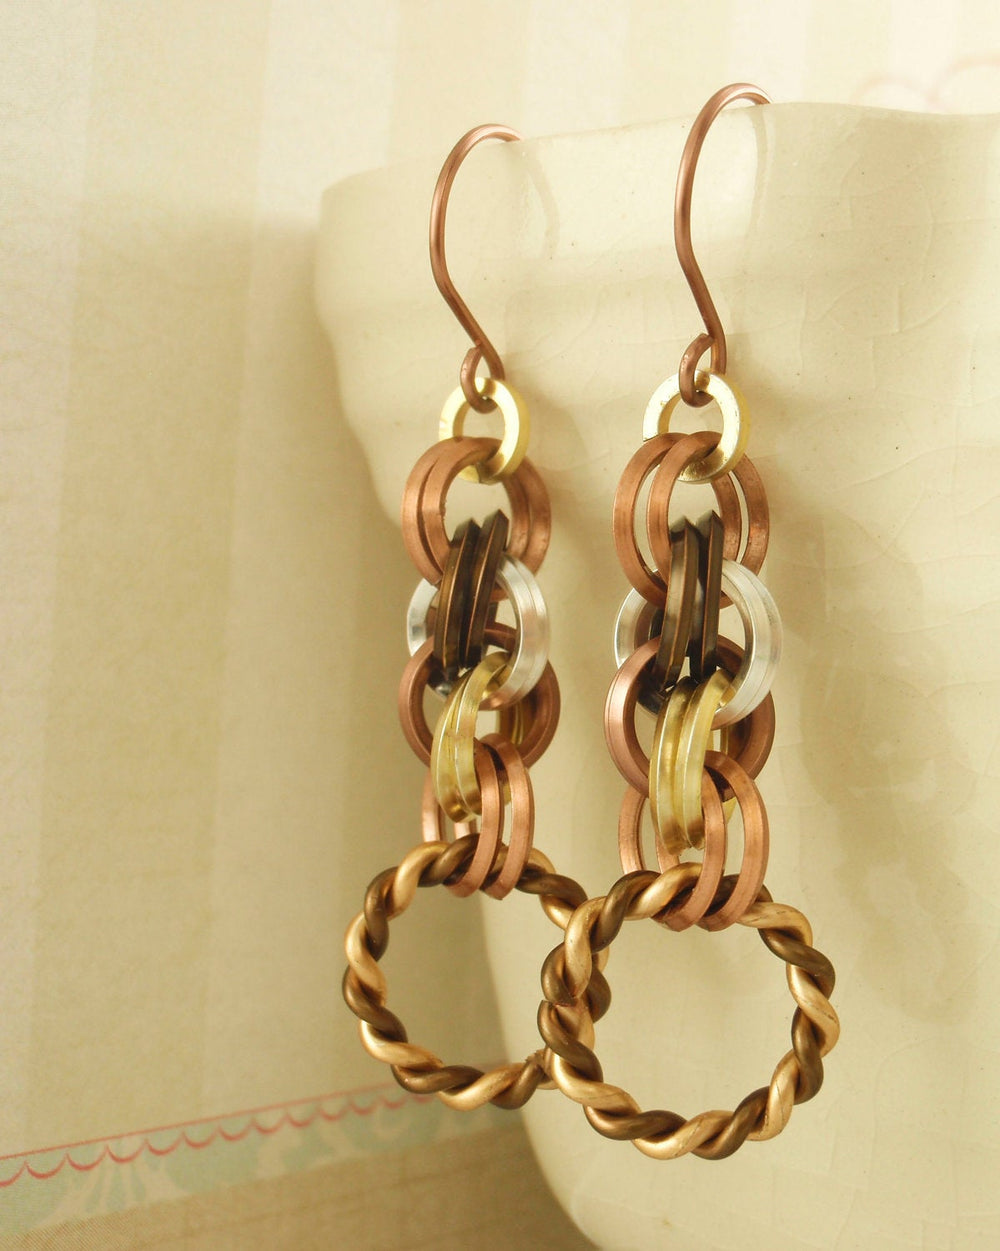 Earring Kit - Square Mixed Metals Double Spiral Chainmaille - Unique Non Tarnish On Edge Rings